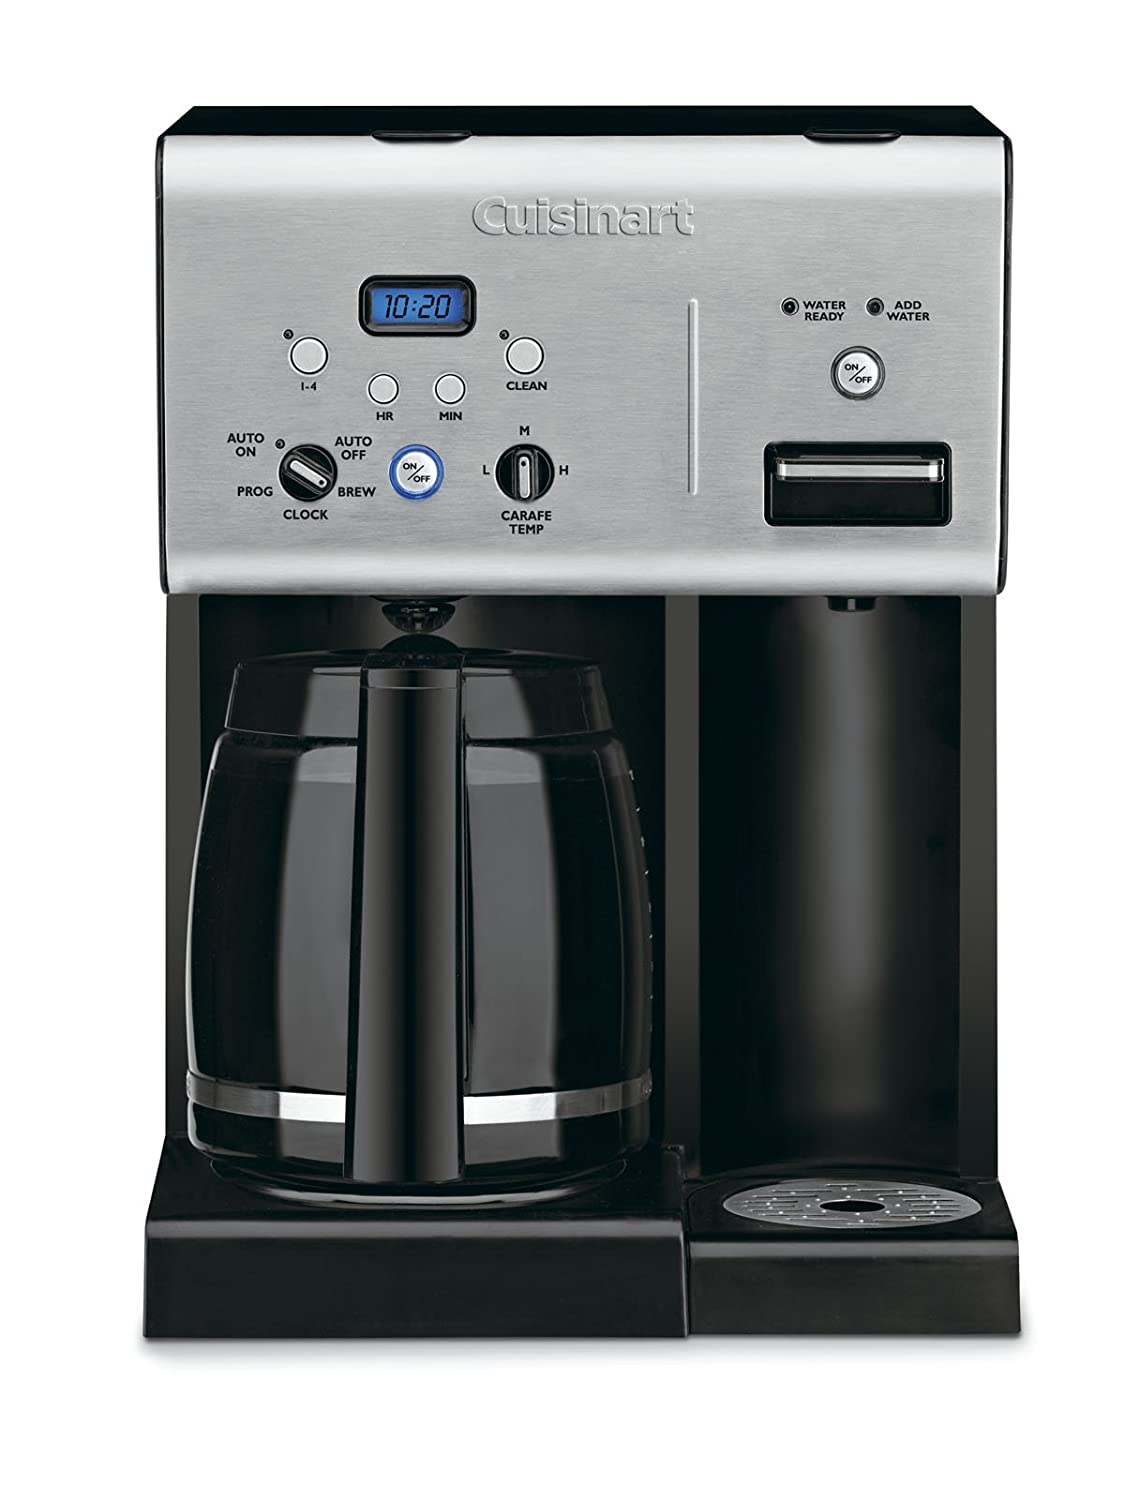 Cuisinart CHW-12 Coffee Plus 12-Cup Programmable Coffeemaker with Hot Water System, Black/Stainless Cuisinart Kitchen Electrics